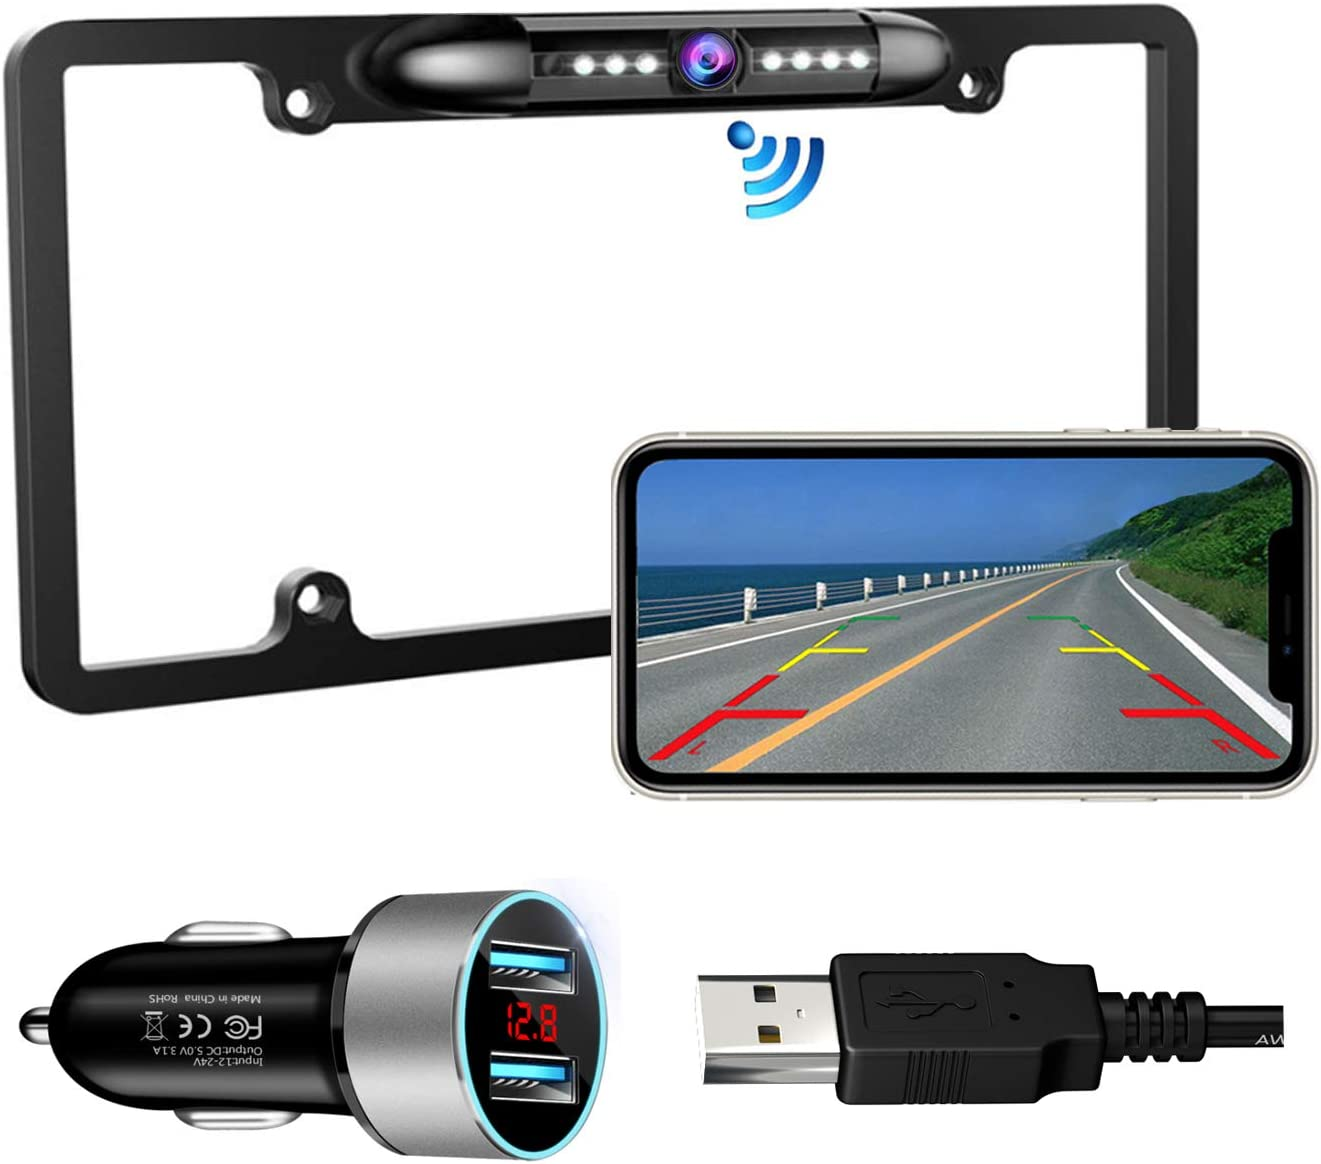 Ultra Strong Signal Smooth Video Image Never Freezing Clear Picture Suitable for Cars Trucks Trailers SUVs Casoda WiFi Wireless Backup Camera for iPhone and Android Easy to Install